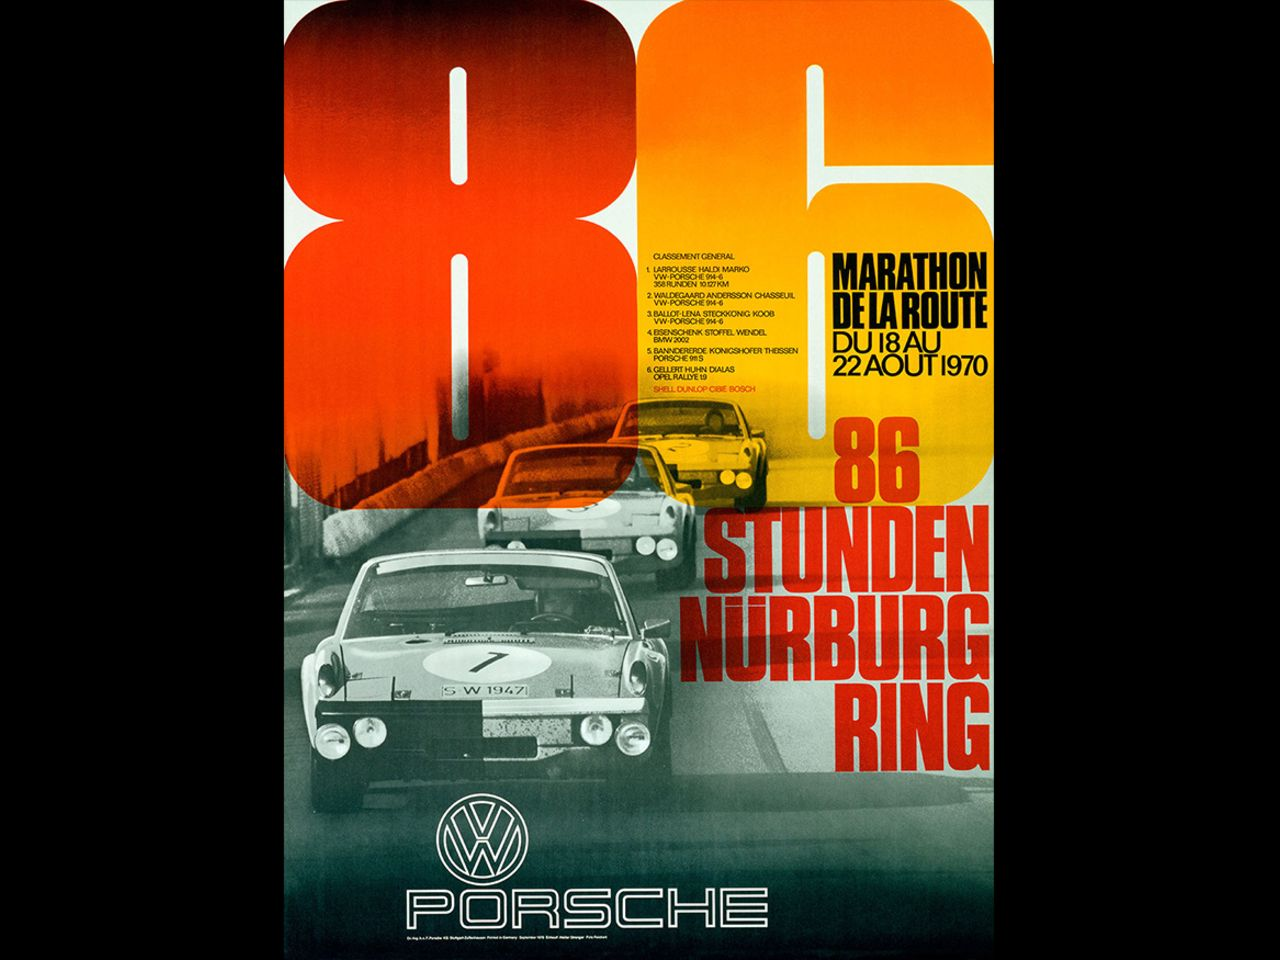 "Yet Strenger remained true to his clear visual idiom. The 914-6 GT ""VW Porsche"" dominated the 86-hour Marathon de la Route on the Nürburgring in 1970, taking the first three places on both the course and the poster."